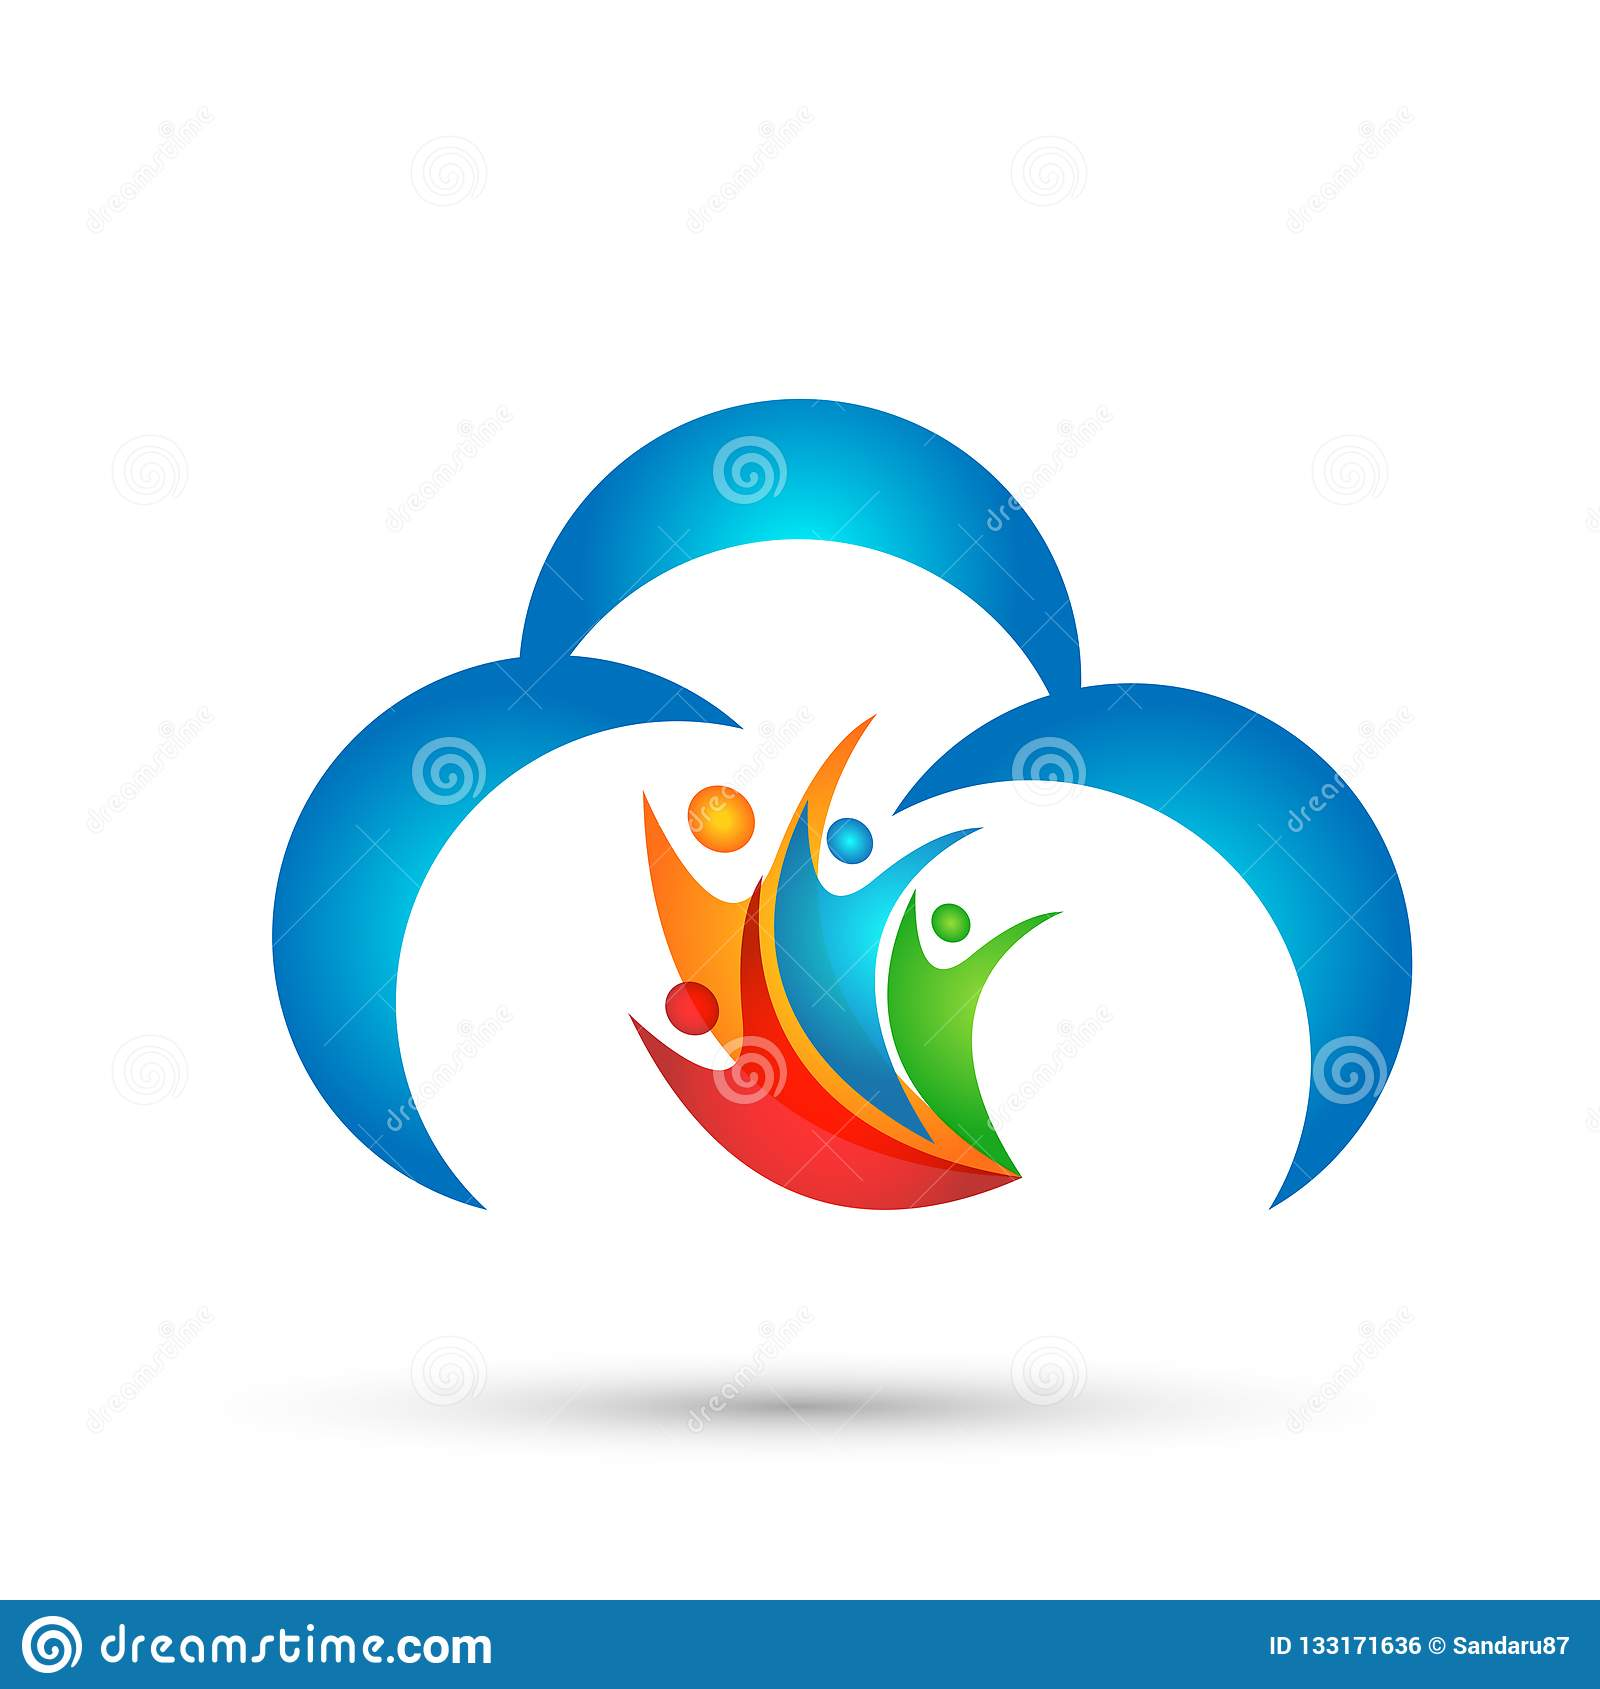 Abstract cloud people team work union wellness celebration concept symbol icon design vector on white background